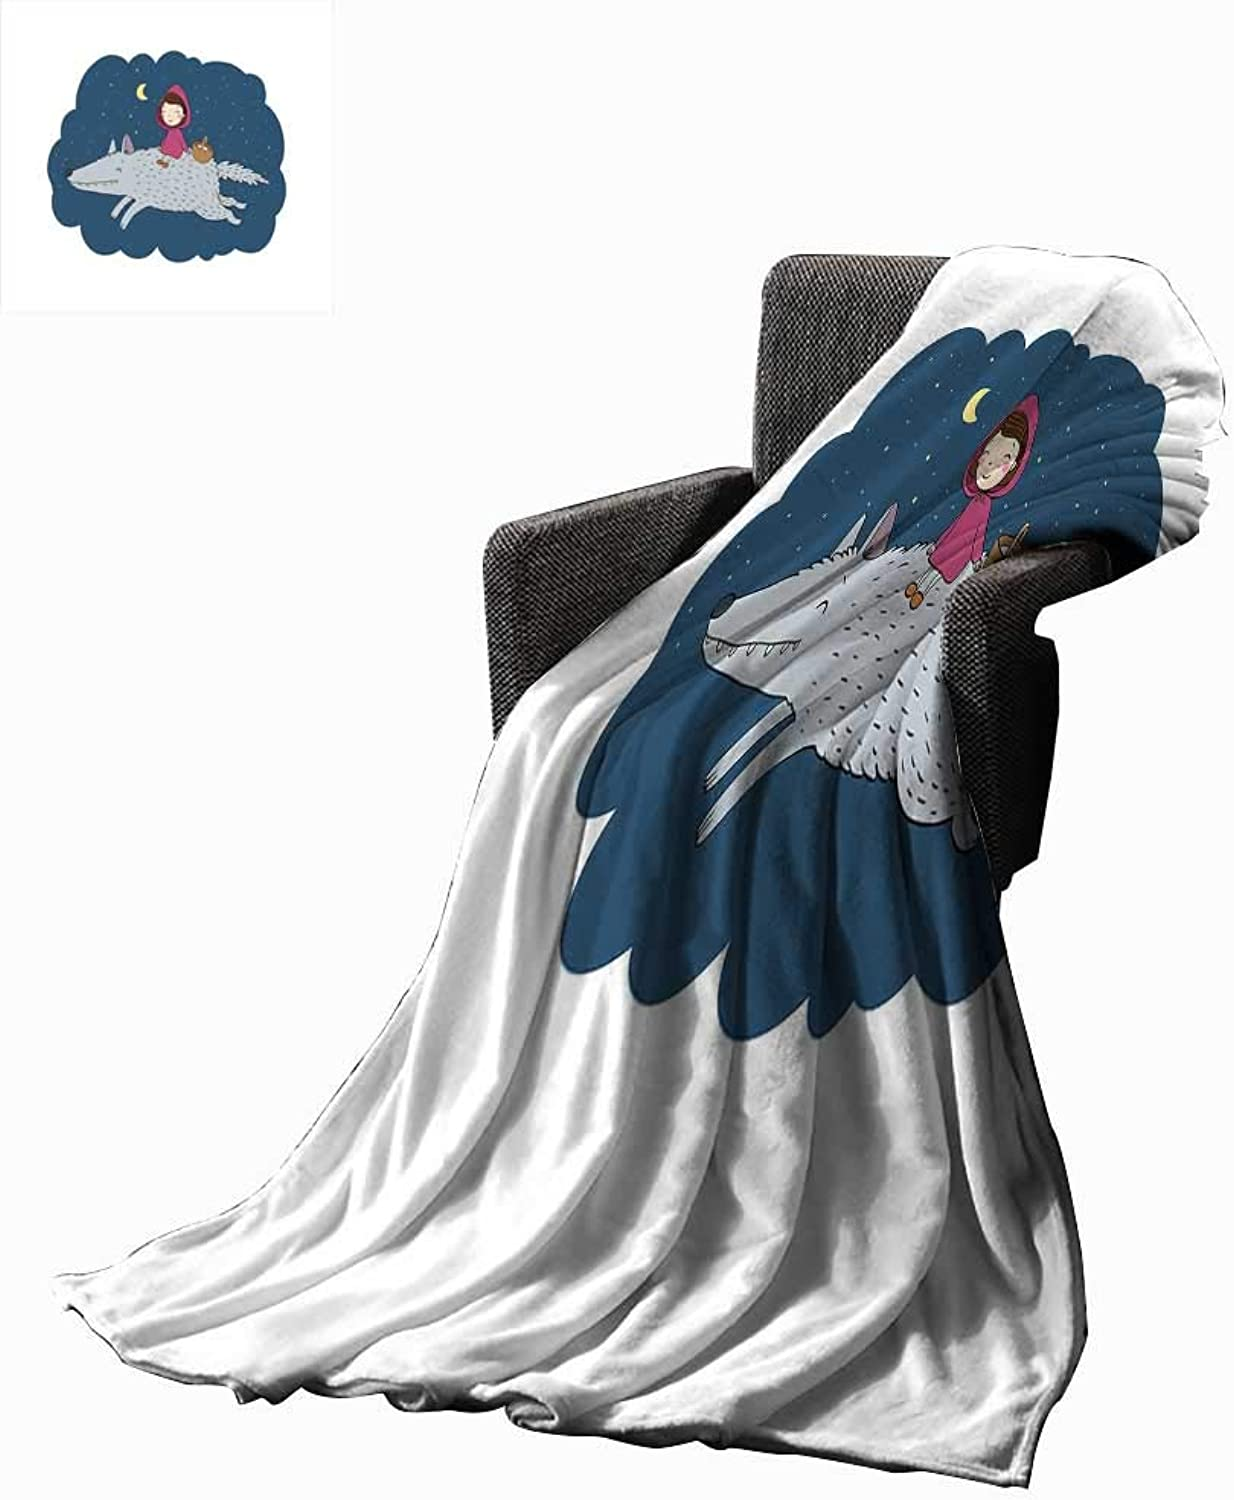 RenteriaDecor Kids Weave Pattern Extra Long Blanket Cartoon Kid in a Pink Hood and Basket on a Giant Wolf Running in The Starry Night 60 x50 ,Super Soft and Comfortable,Suitable for Sofas,Chairs,beds